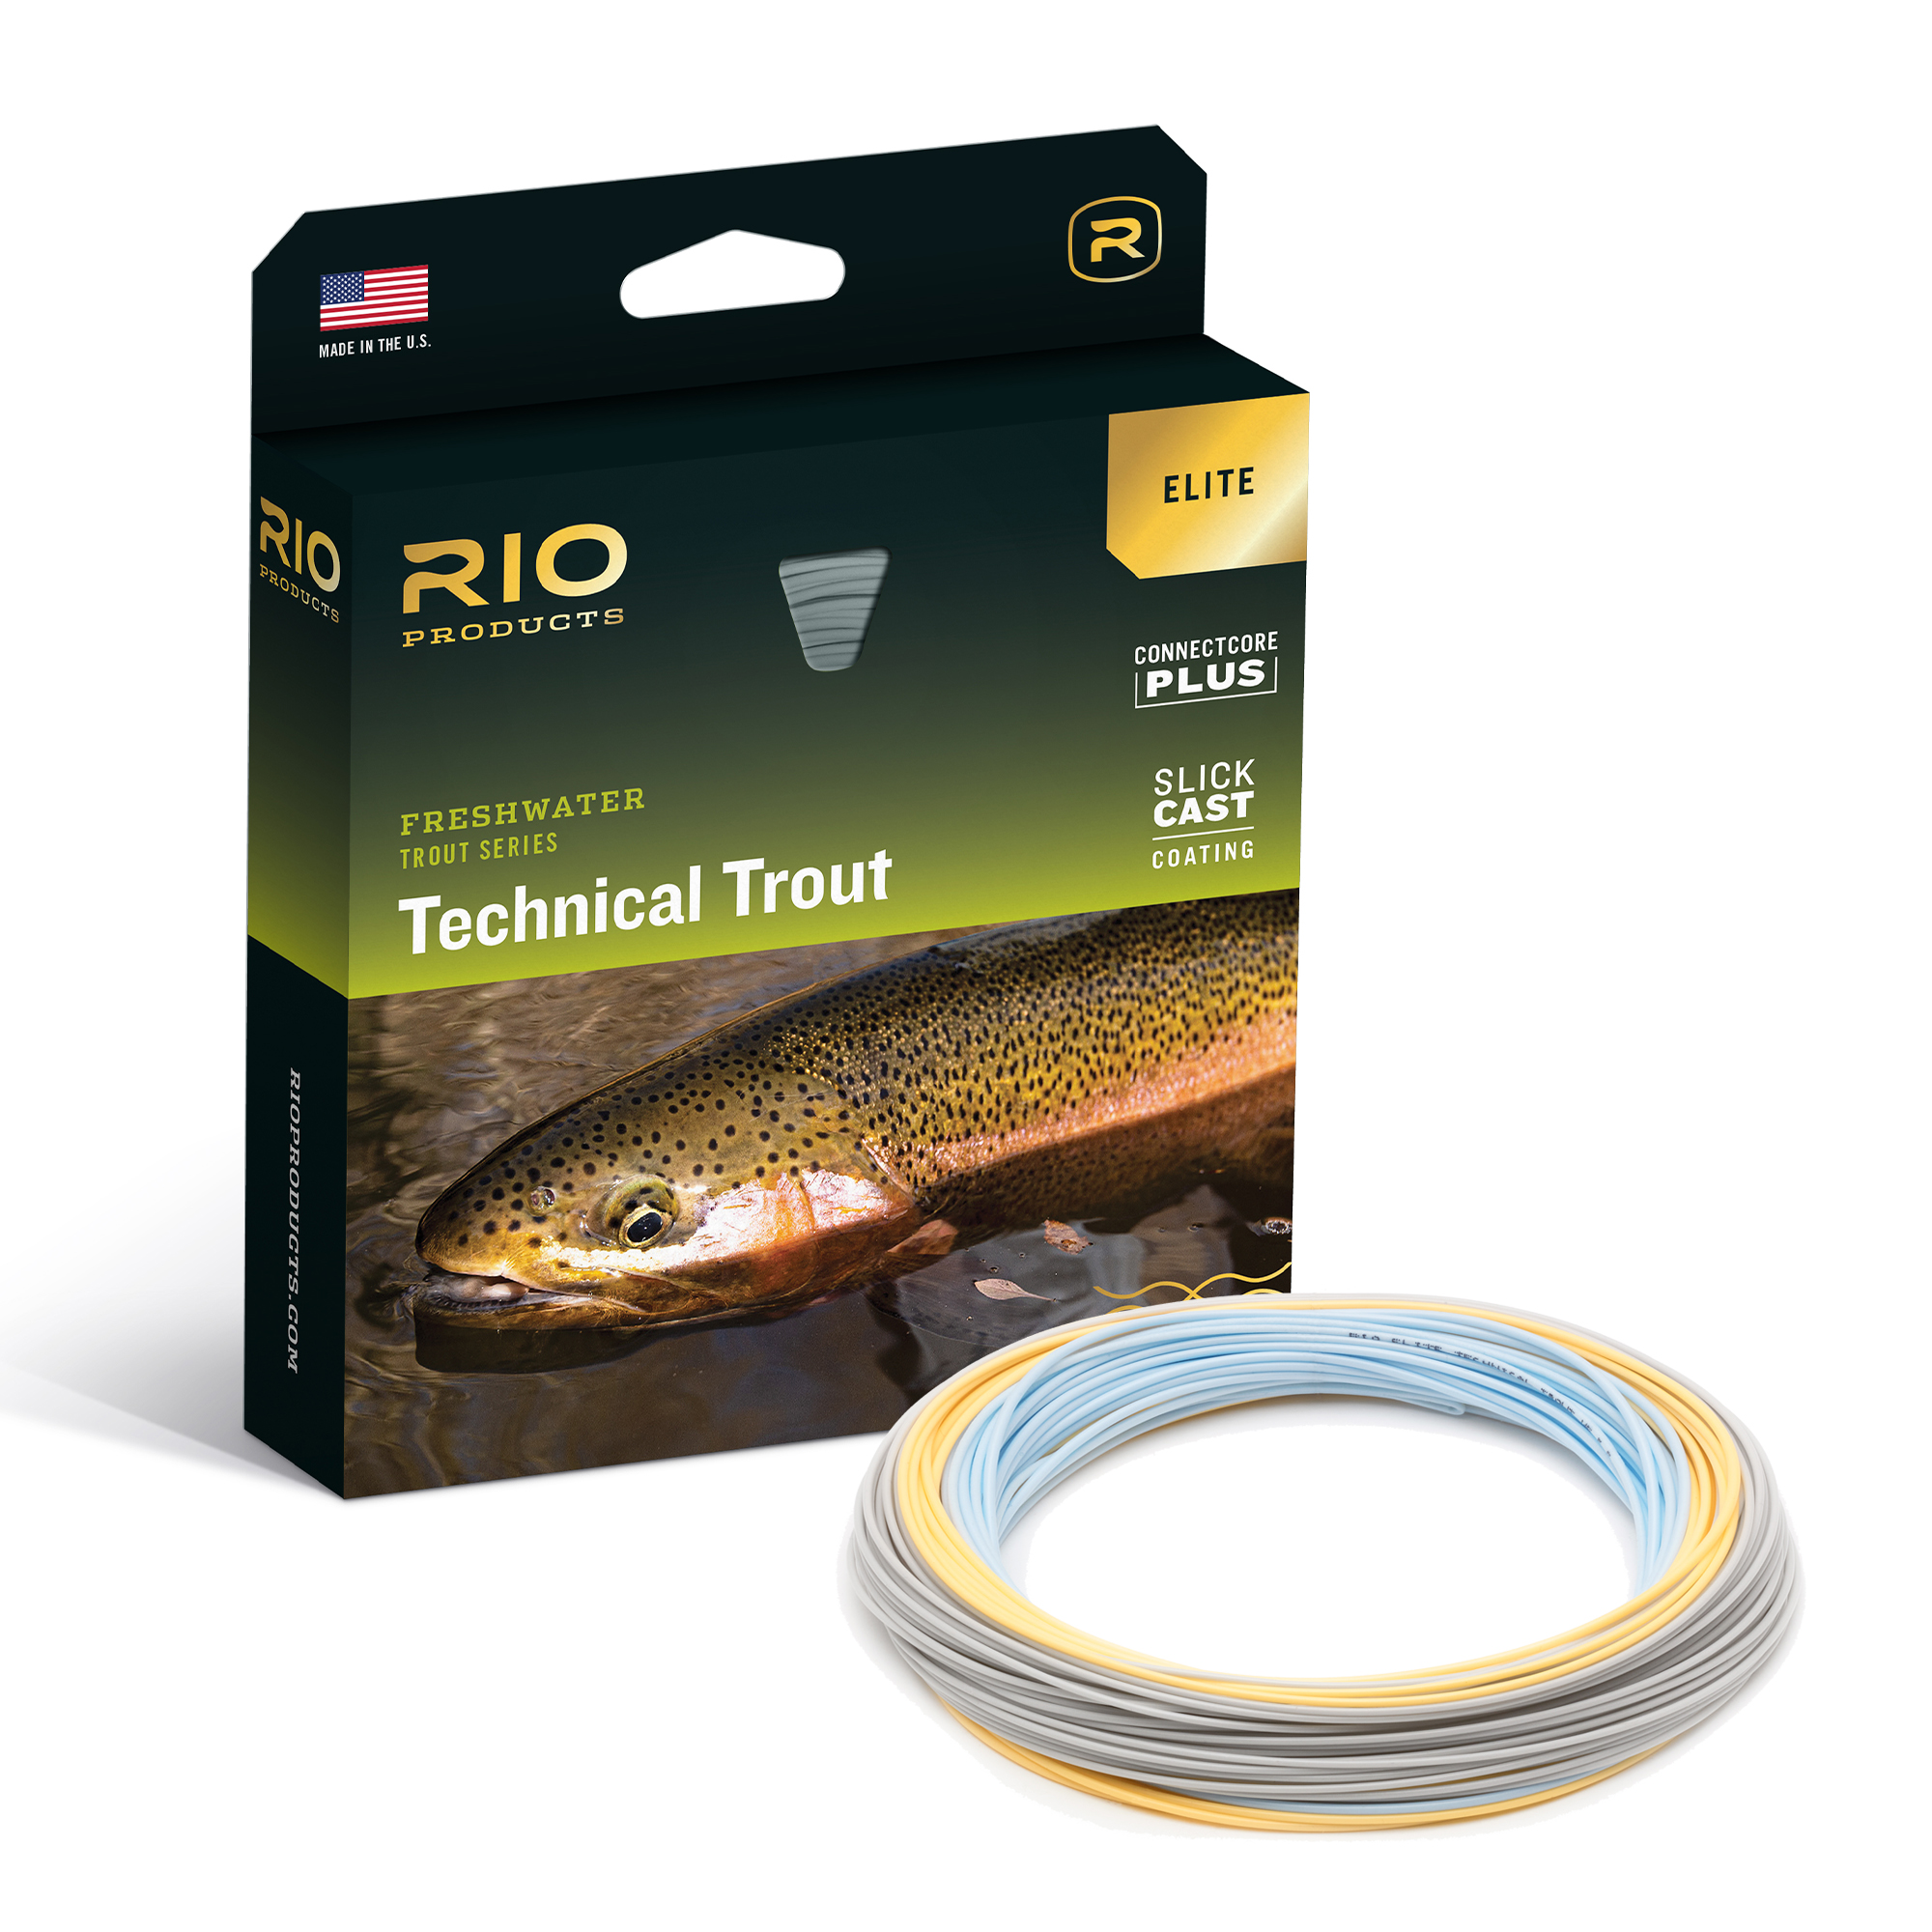 RIO SLICKCAST TECHNICAL TROUT ELITE FLY LINE BOX